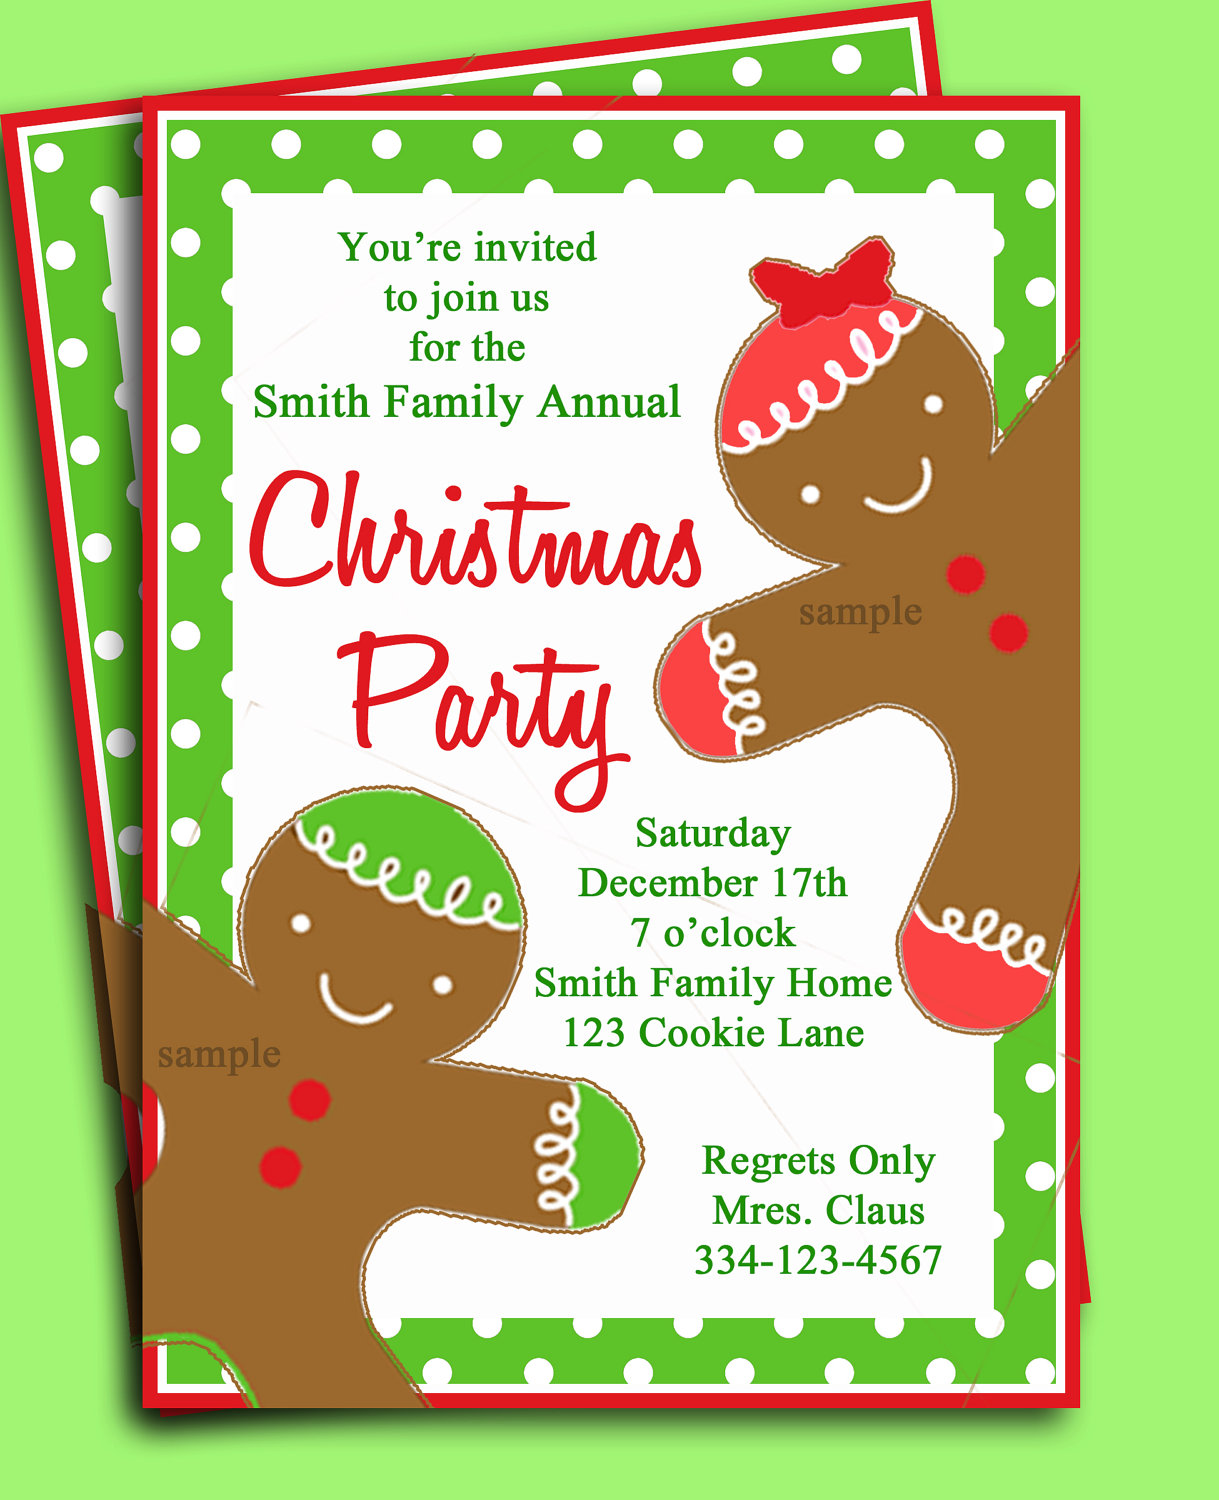 personalized christmas party invitations mickey mouse personalized christmas party invitations personalized christmas personalized christmas party invitations superb personalized il fullxfull 285327417 jpg